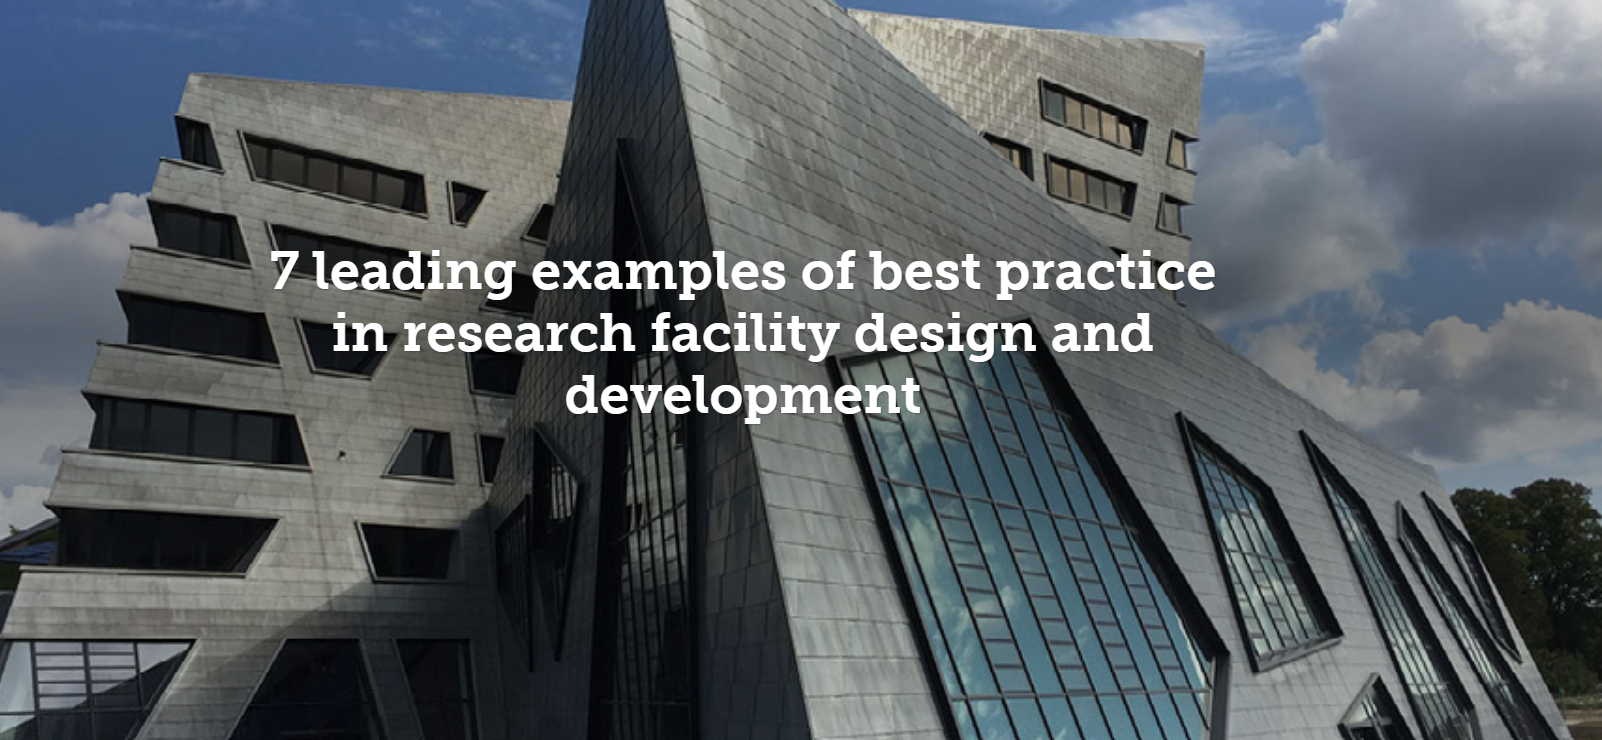 7 leading examples of best practice in research facility design and development